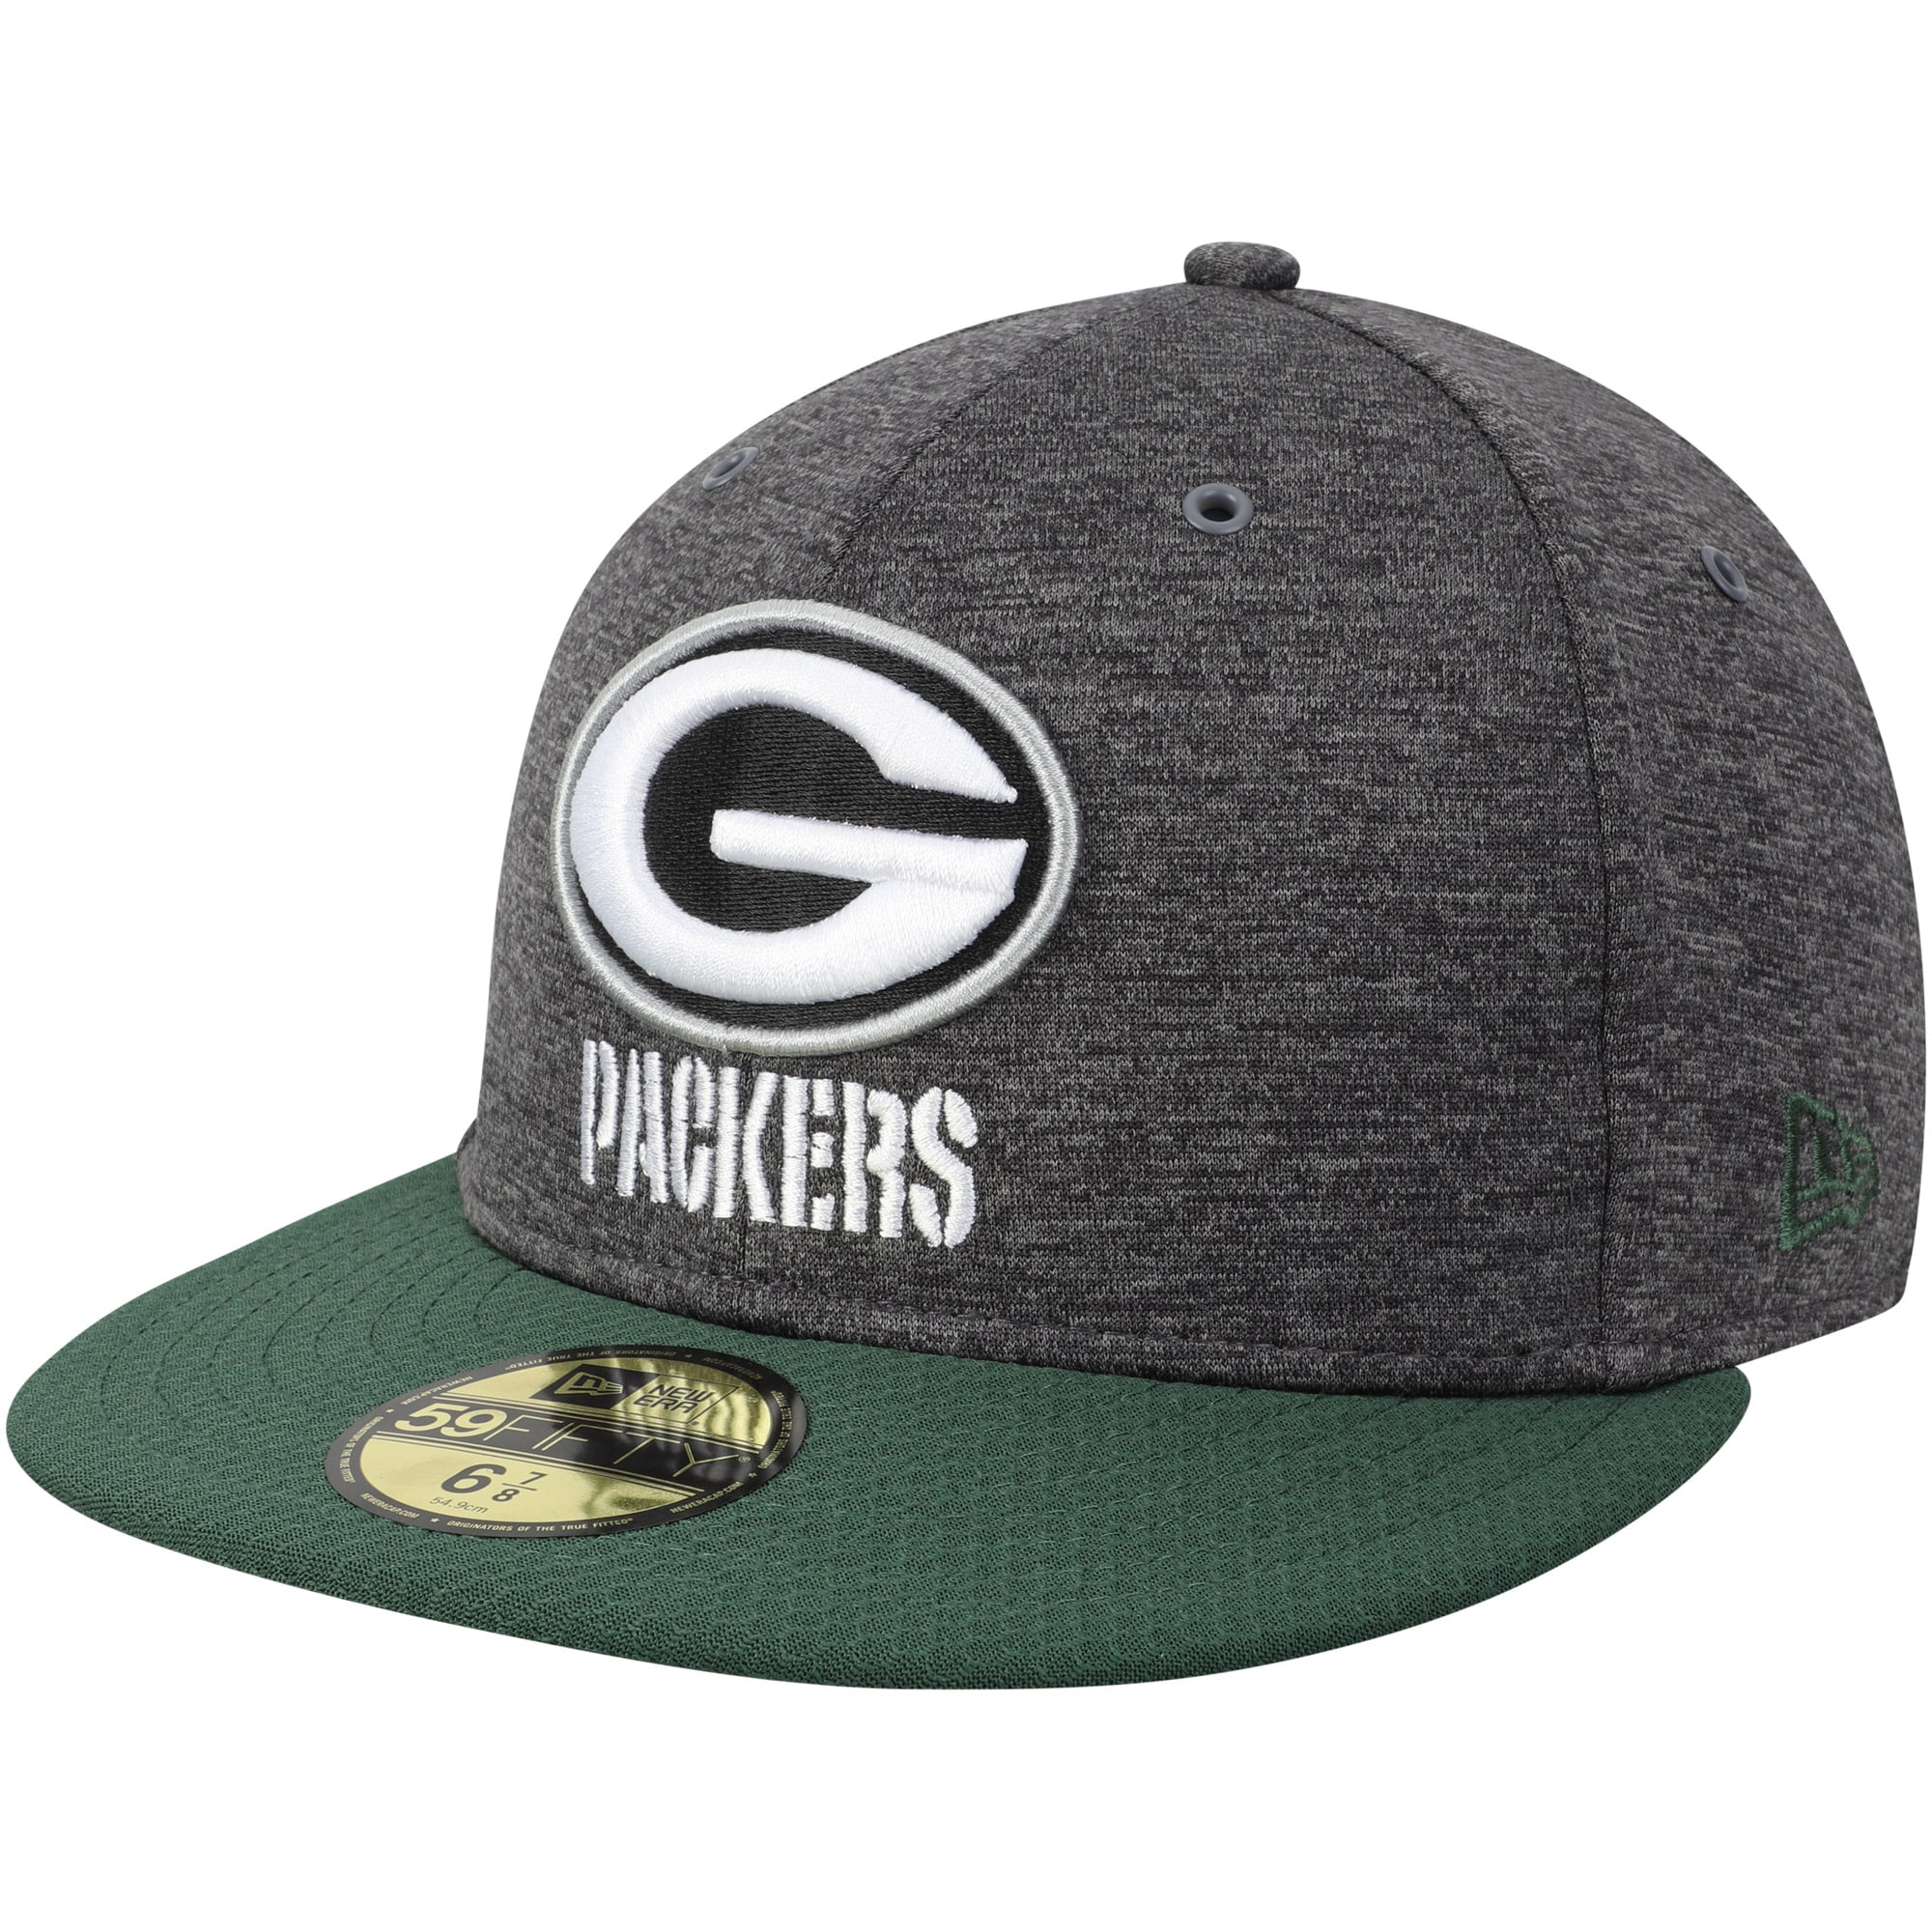 Green Bay Packers New Era 2018 NFL Sideline Home Graphite 59FIFTY Fitted Hat - Heather Gray/Green